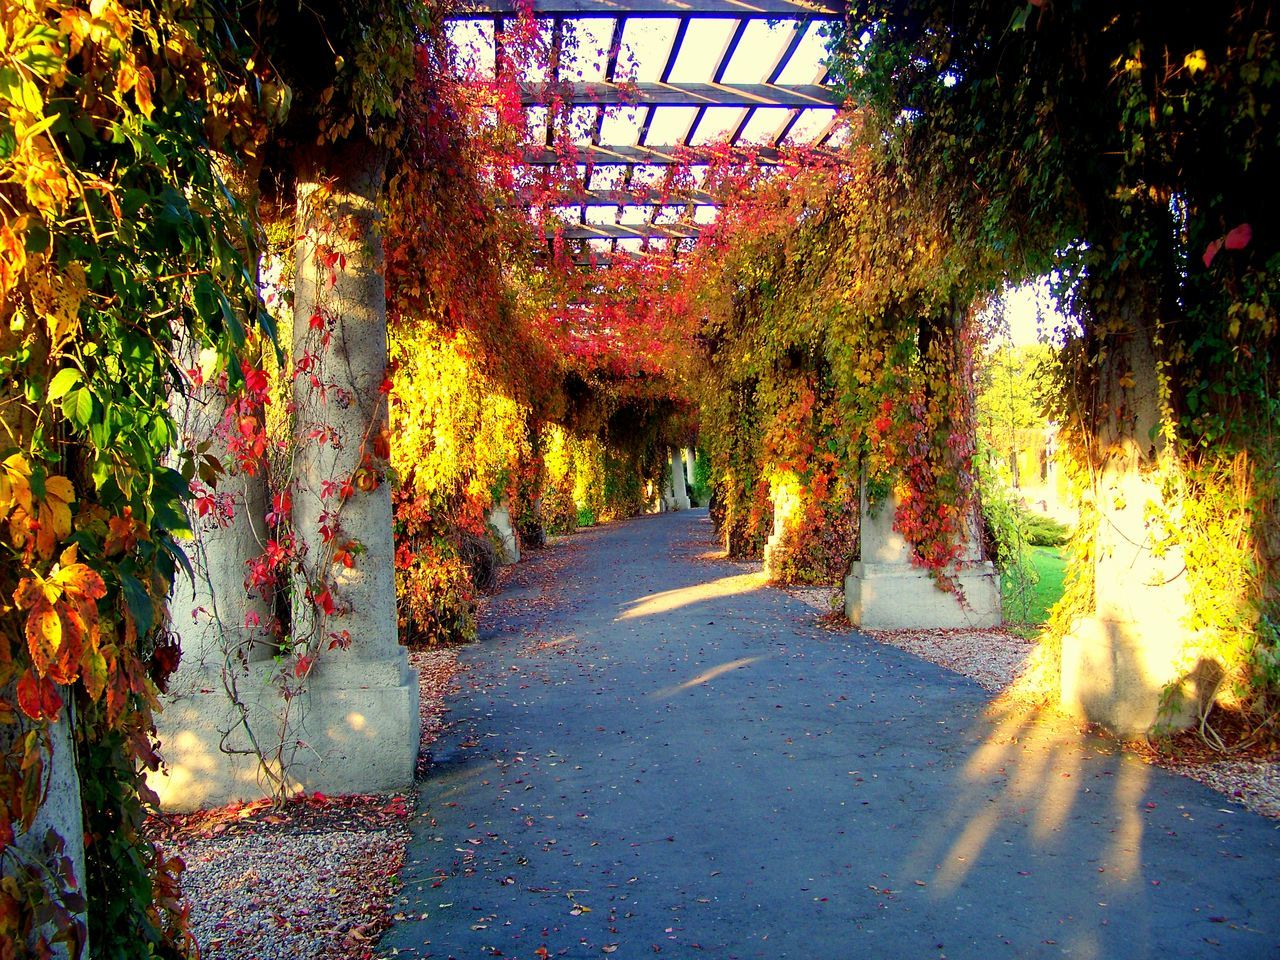 Covered Walkway At Park During Autumn